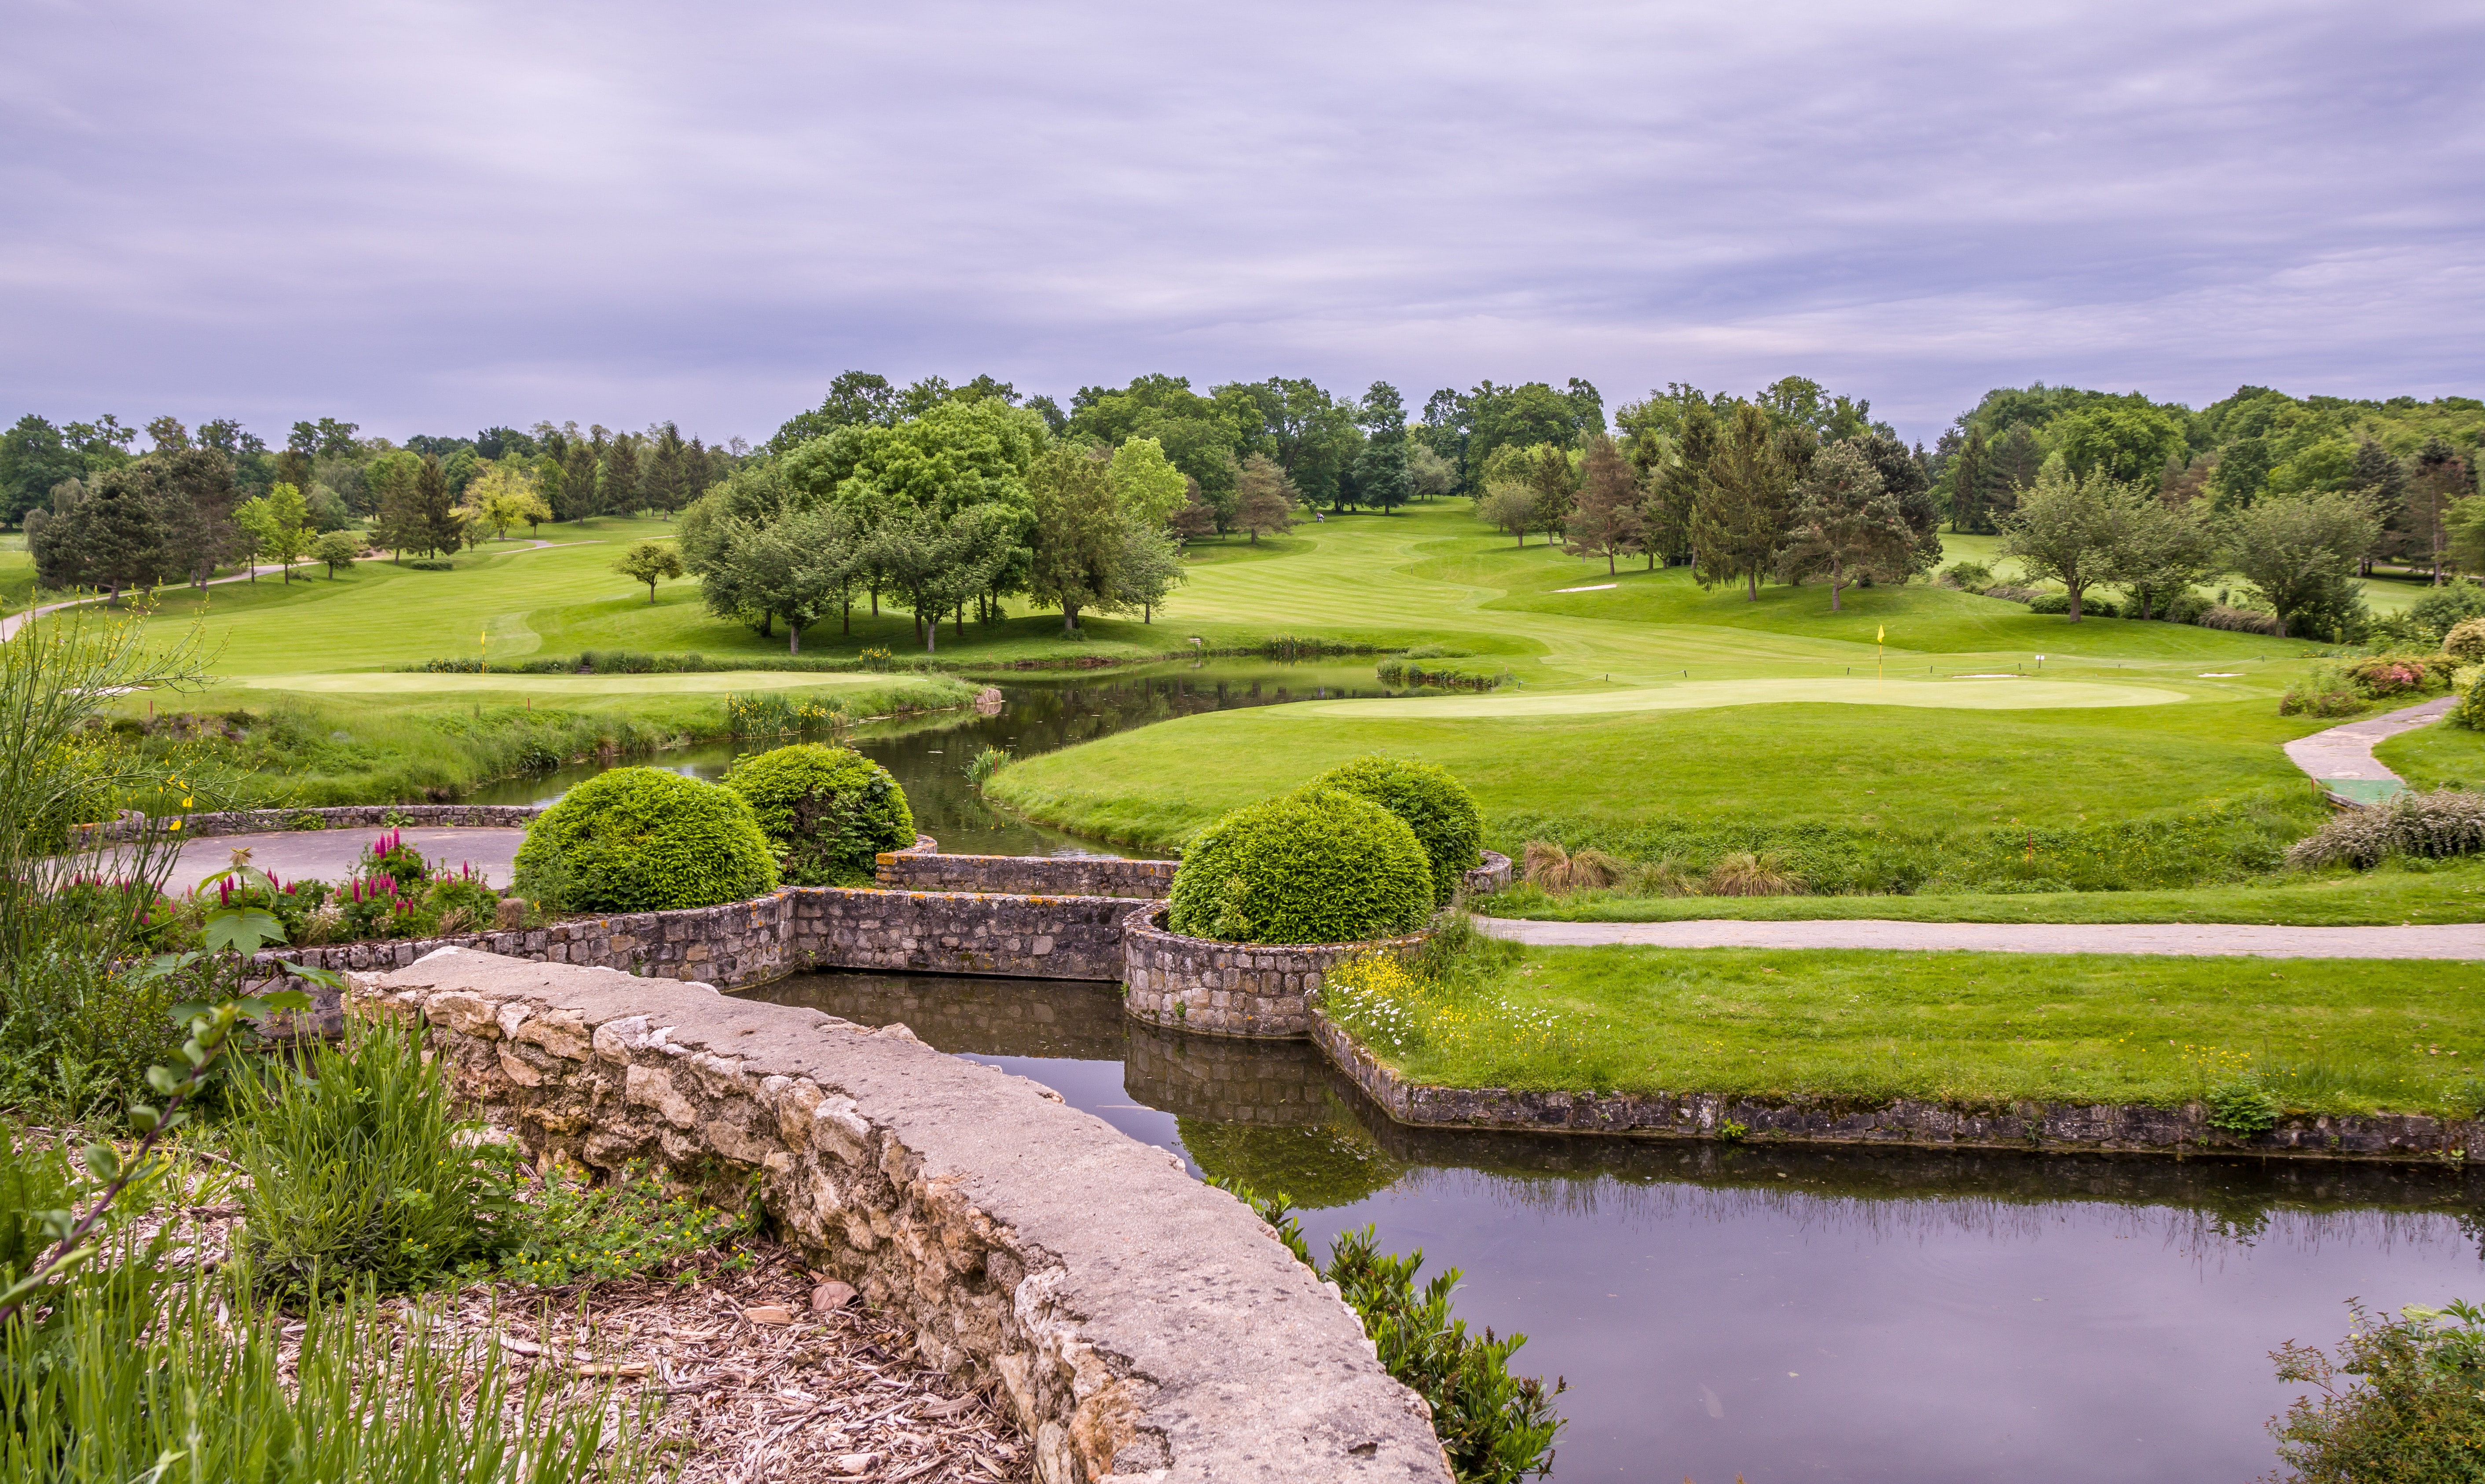 A golf course with holes by the water in Cély